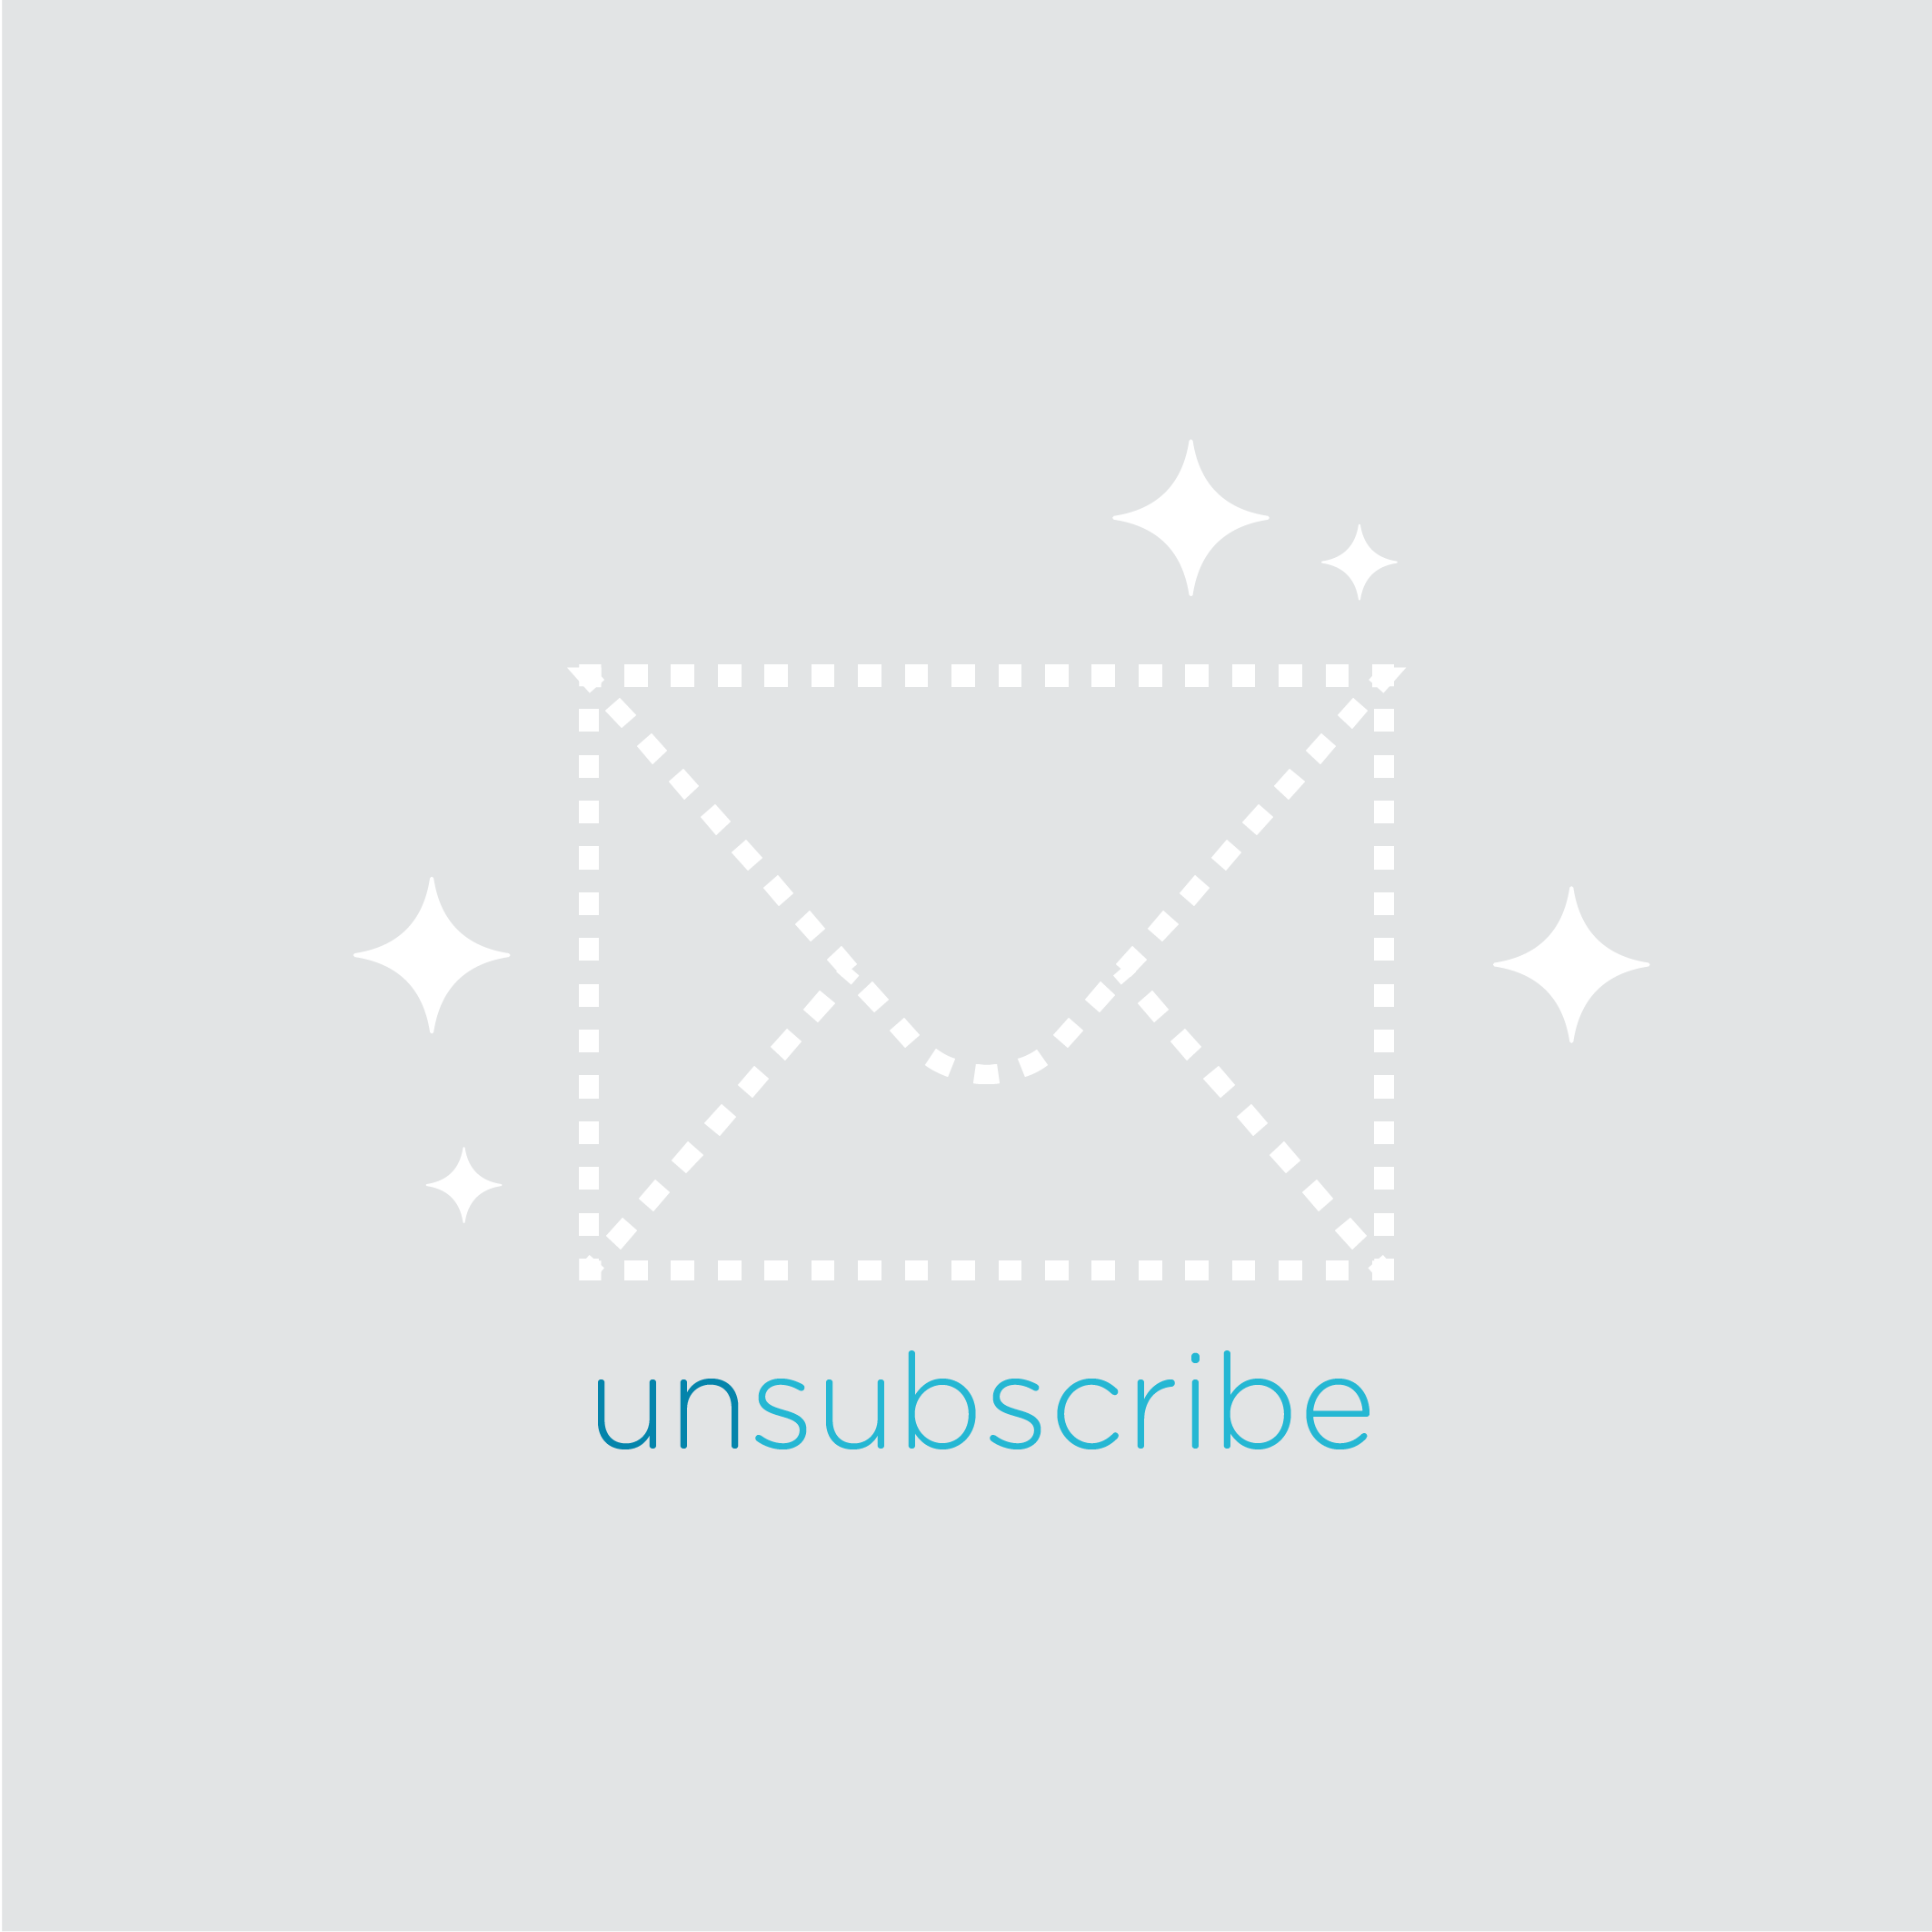 Illustration of an unsubscribe button.